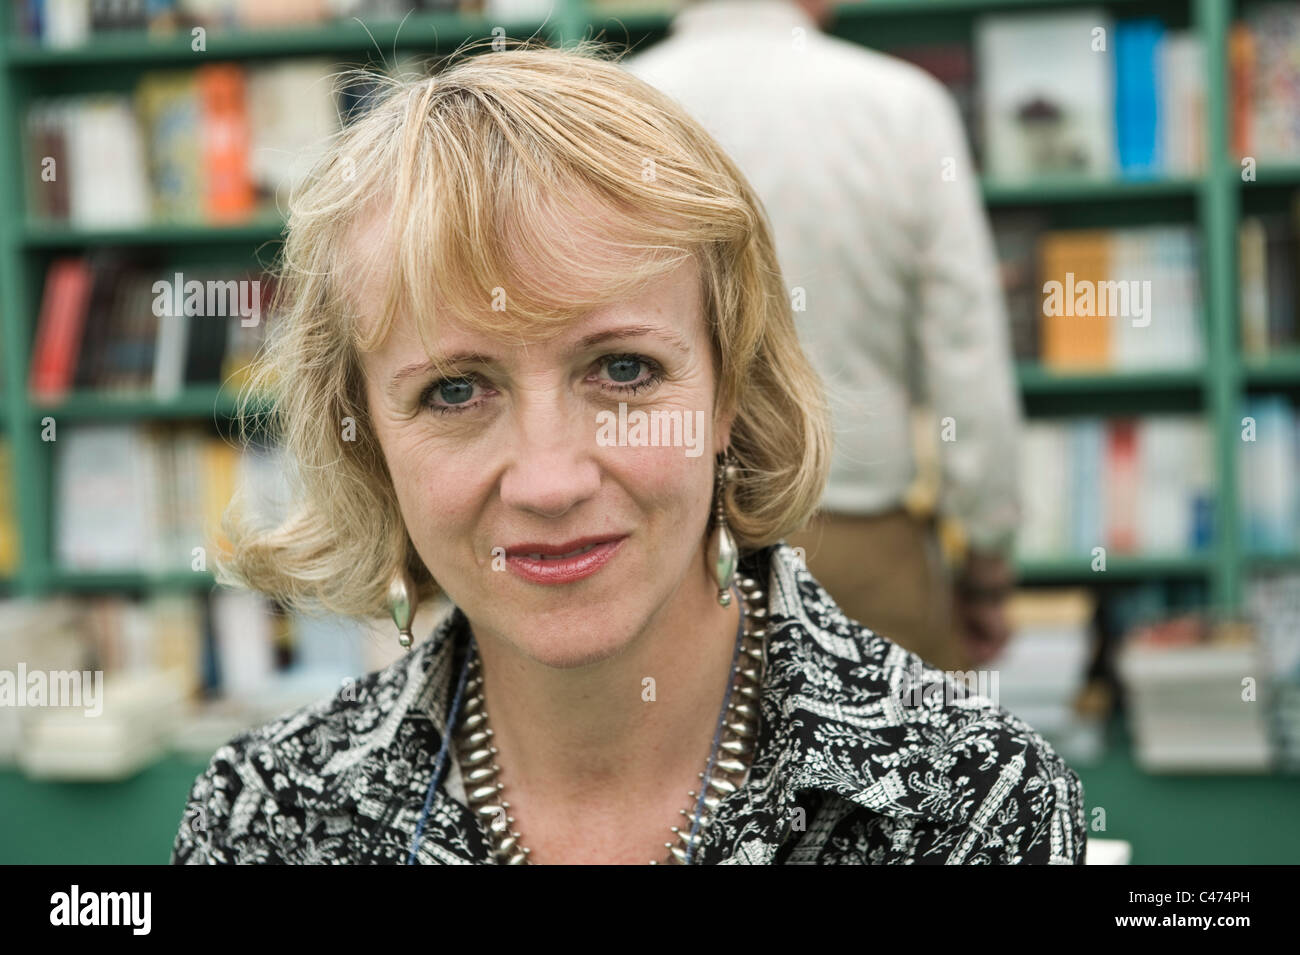 Virginia Nicholson author writer and social historian pictured at Hay Festival 2011 - Stock Image